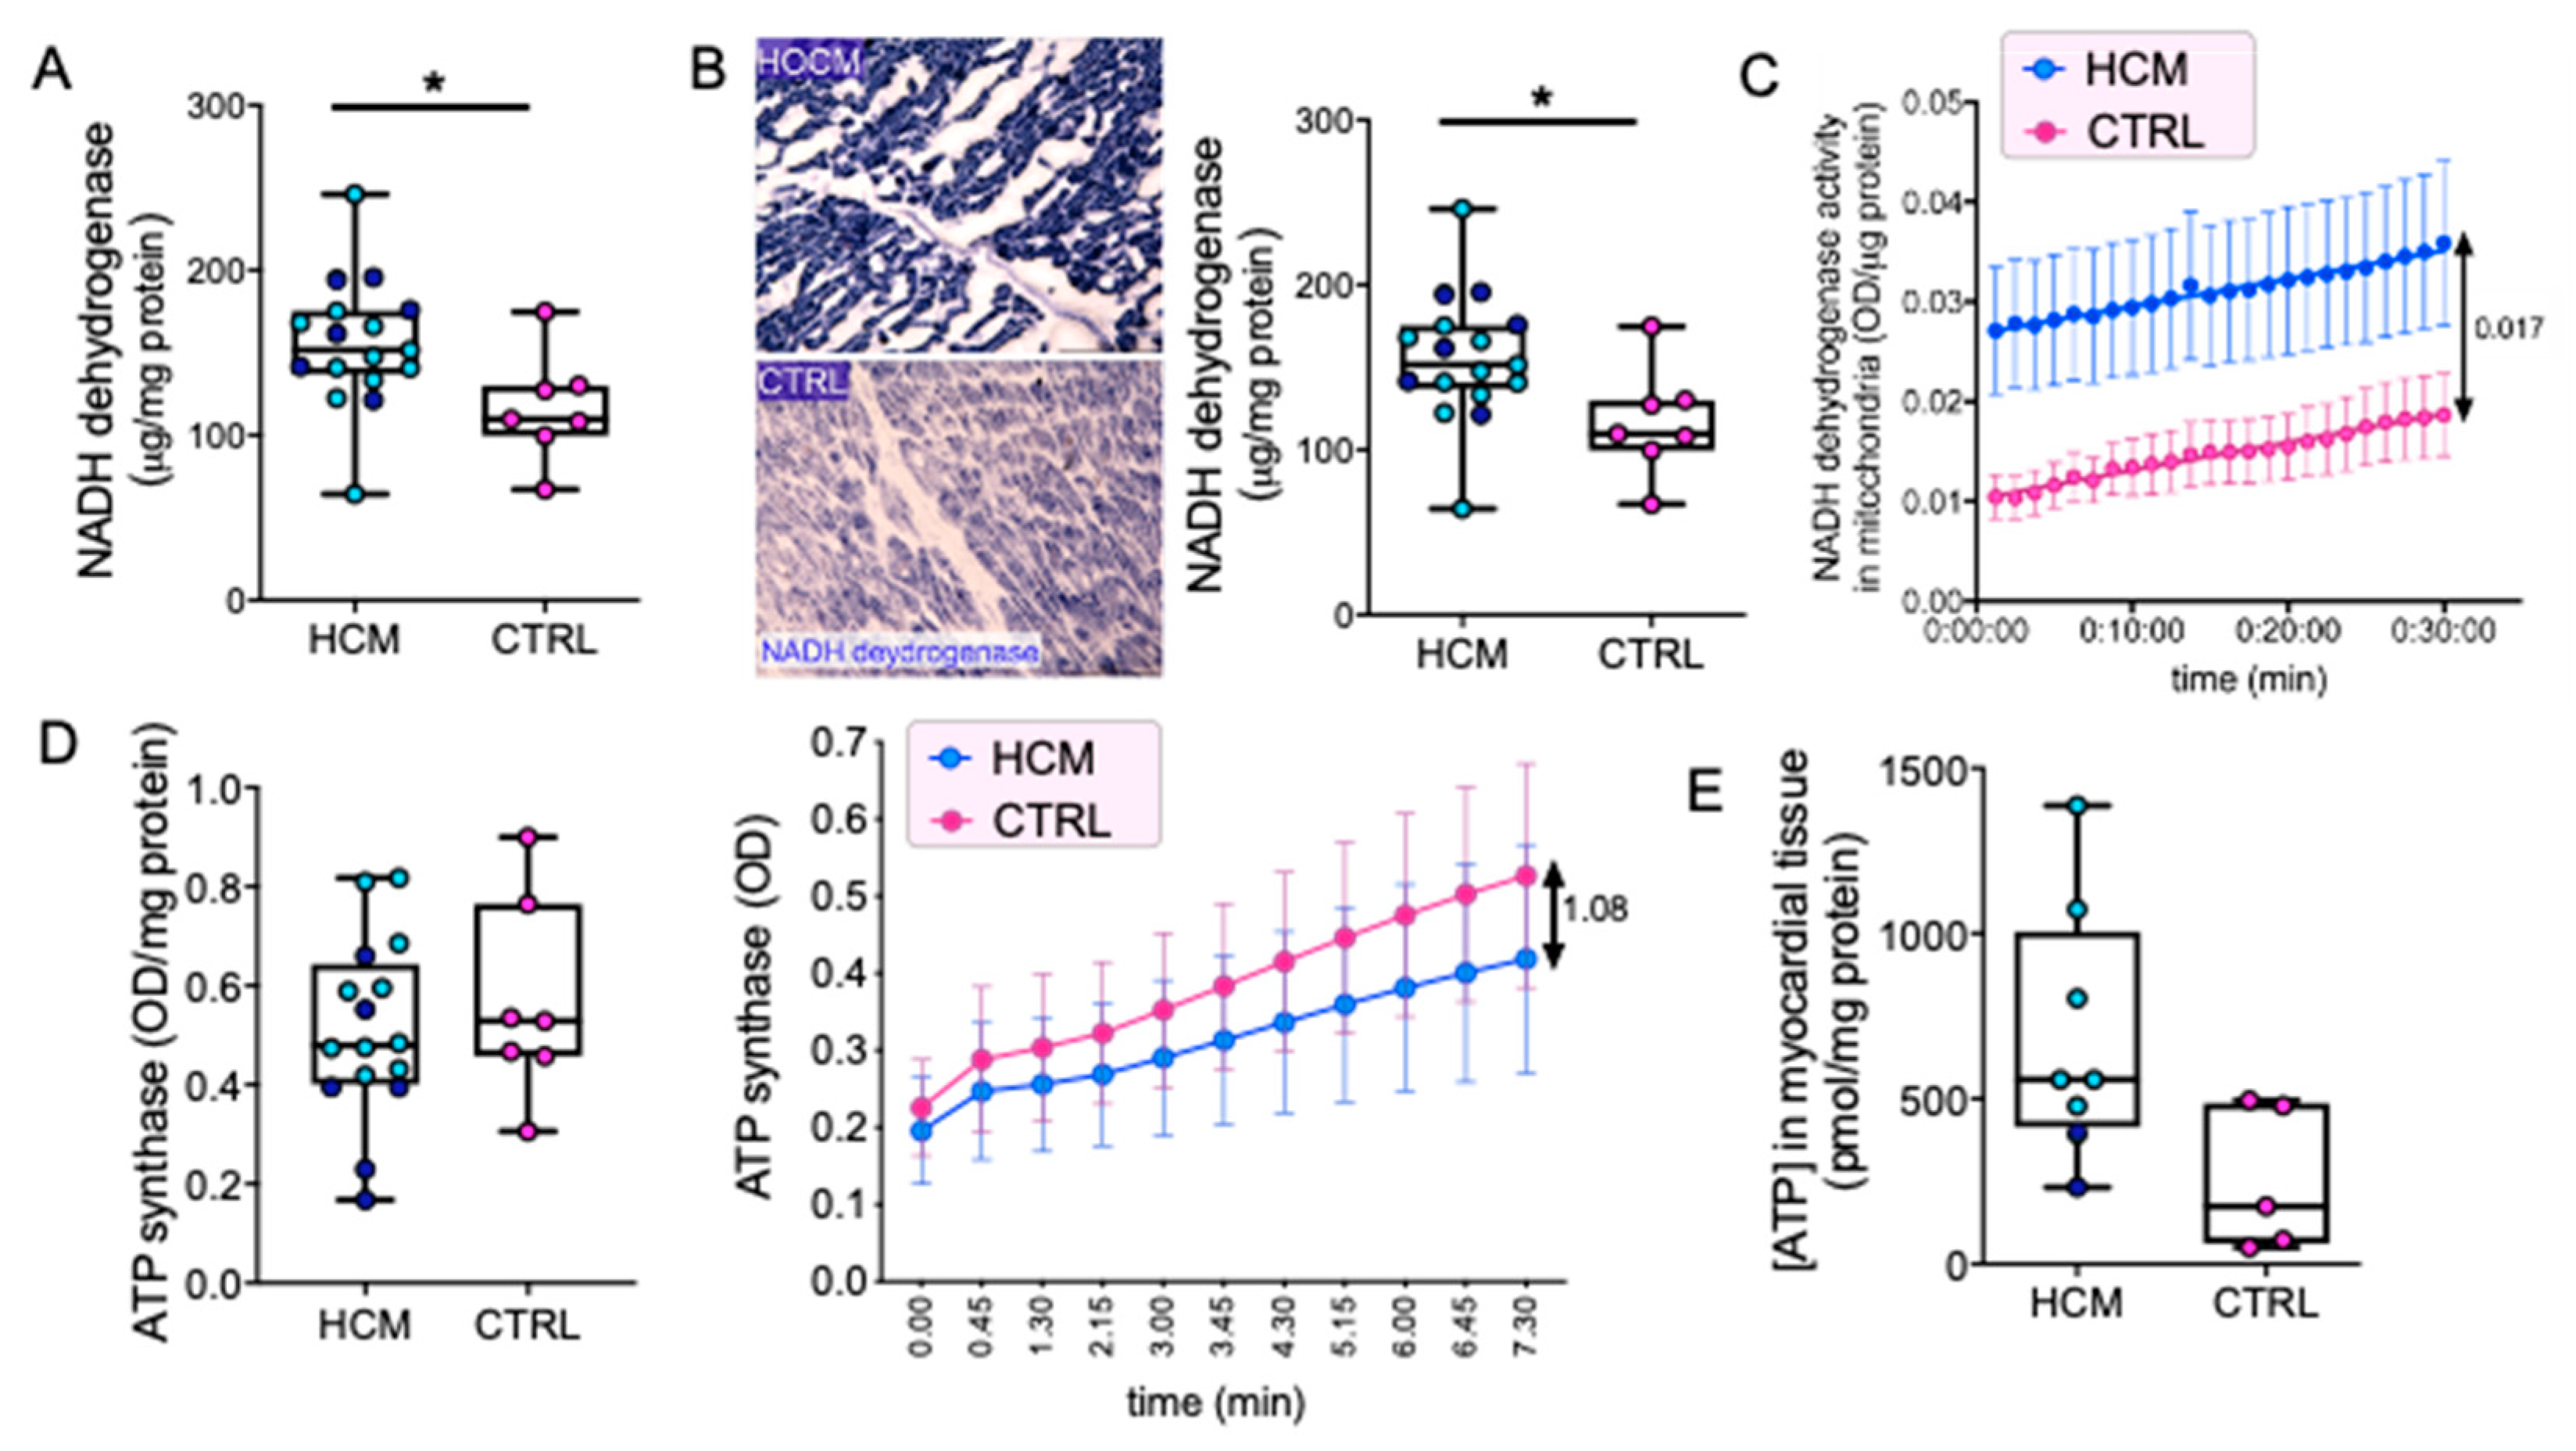 Jcm Free Full Text Mitochondrial Energetics And Ca2 Activated Atpase In Obstructive Hypertrophic Cardiomyopathy Html